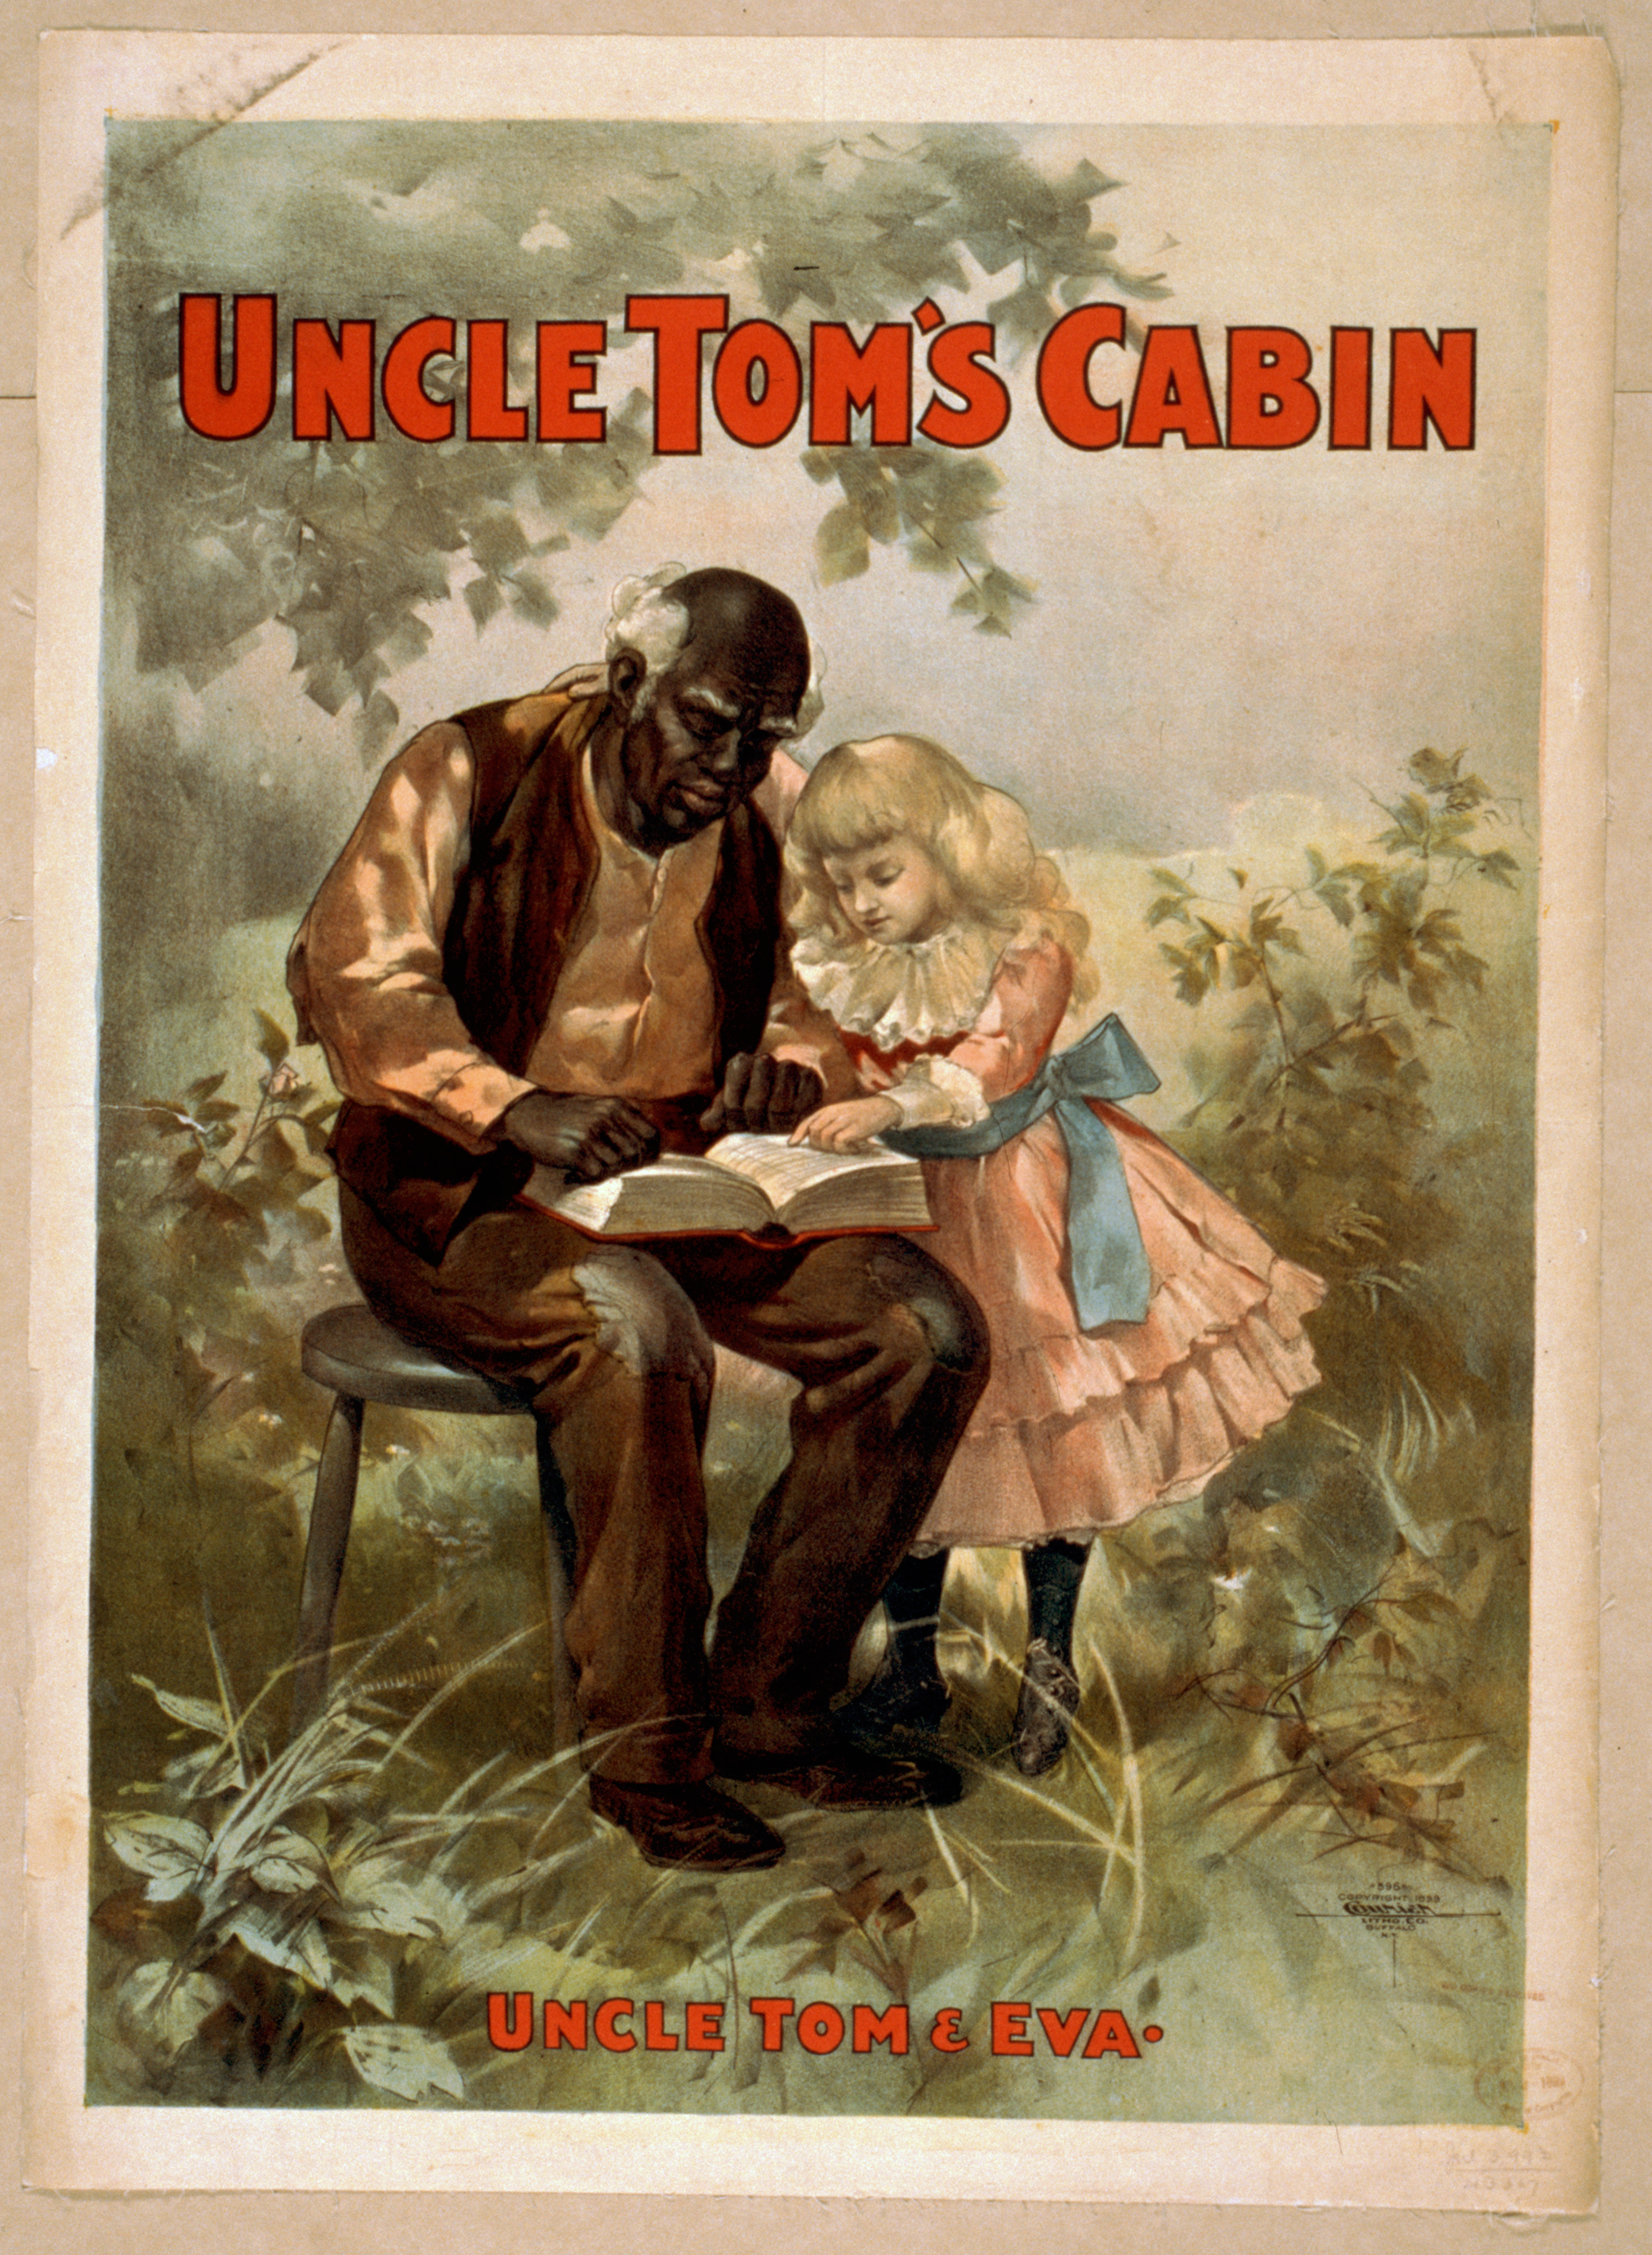 uncle tom cabin Uncle tom's cabin little folks edition by harriet beecher stowe all of the pages have yellowed with age and are slightly brittle i would say that the book is in .